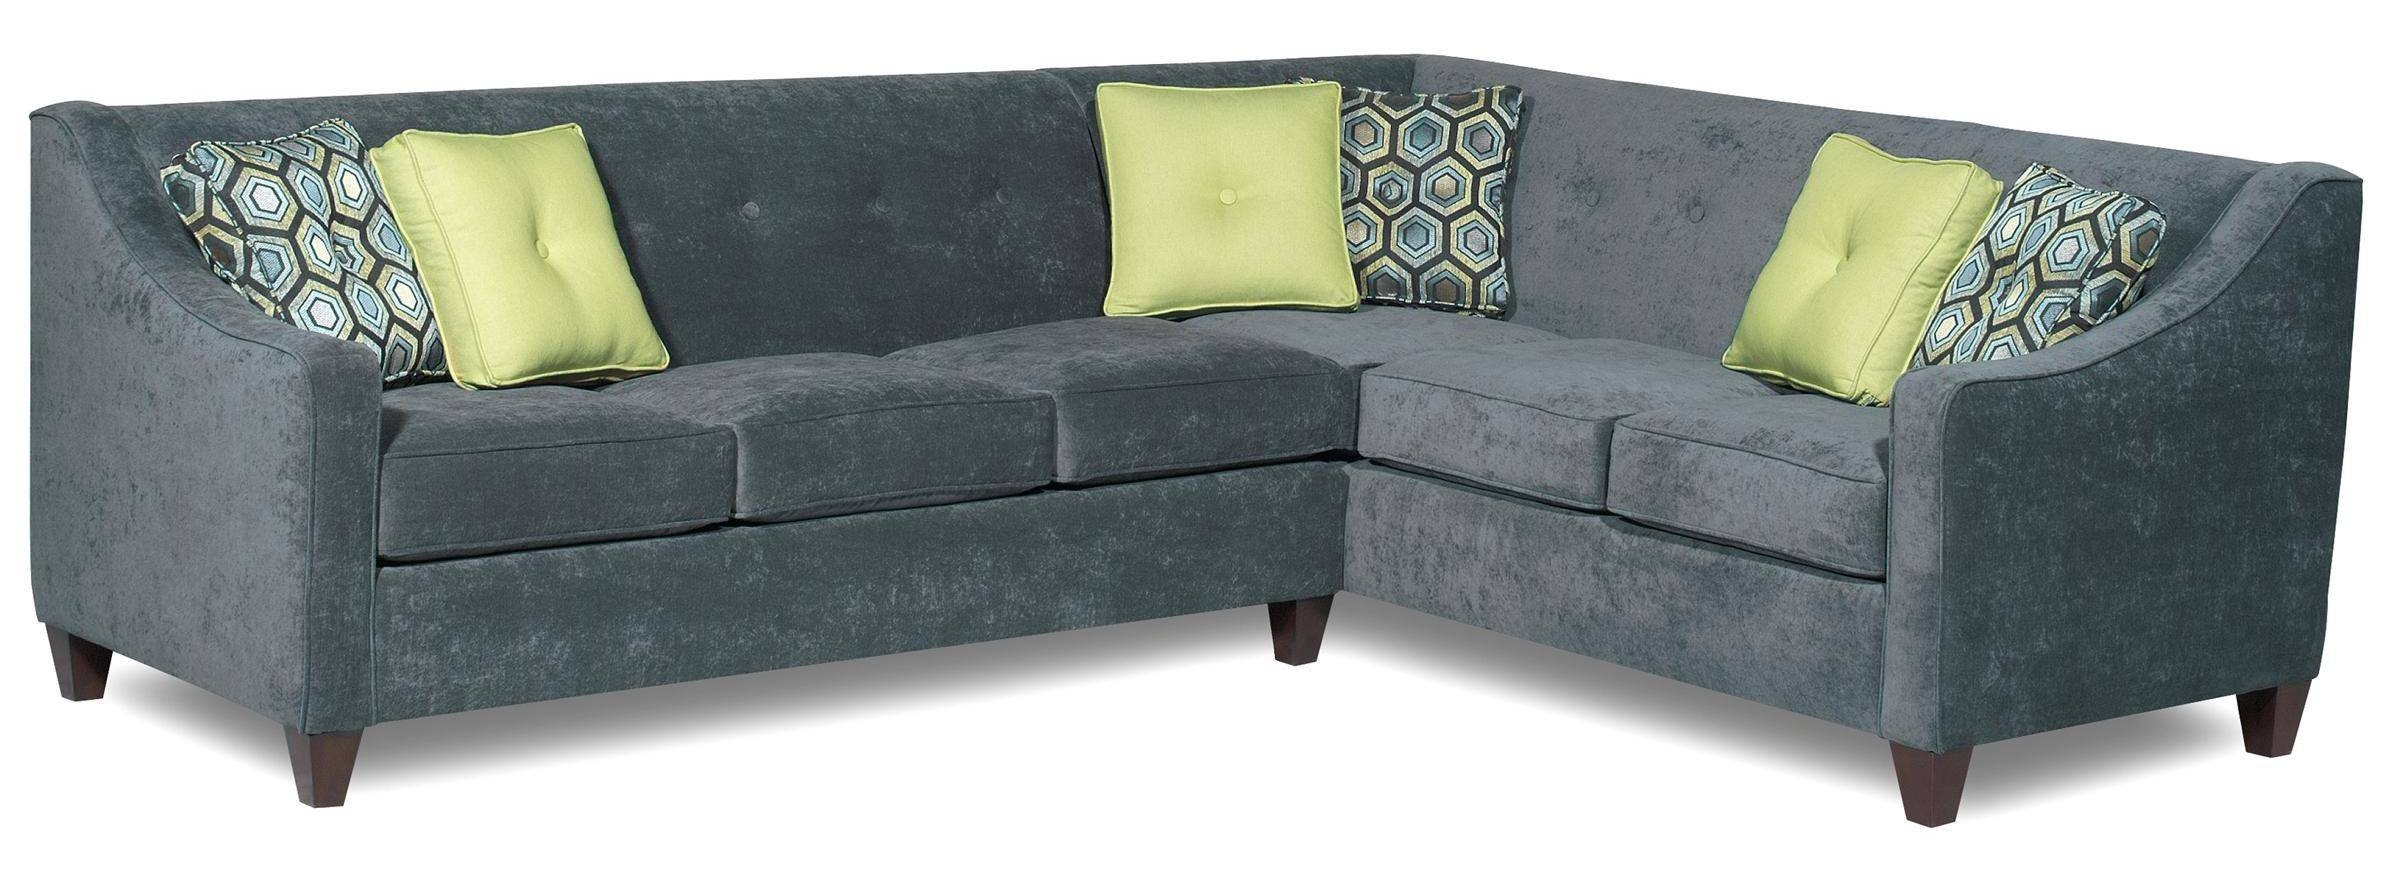 Tight Back Sectional Sofa - Cleanupflorida within Tight Back Sectional Sofas (Image 11 of 15)